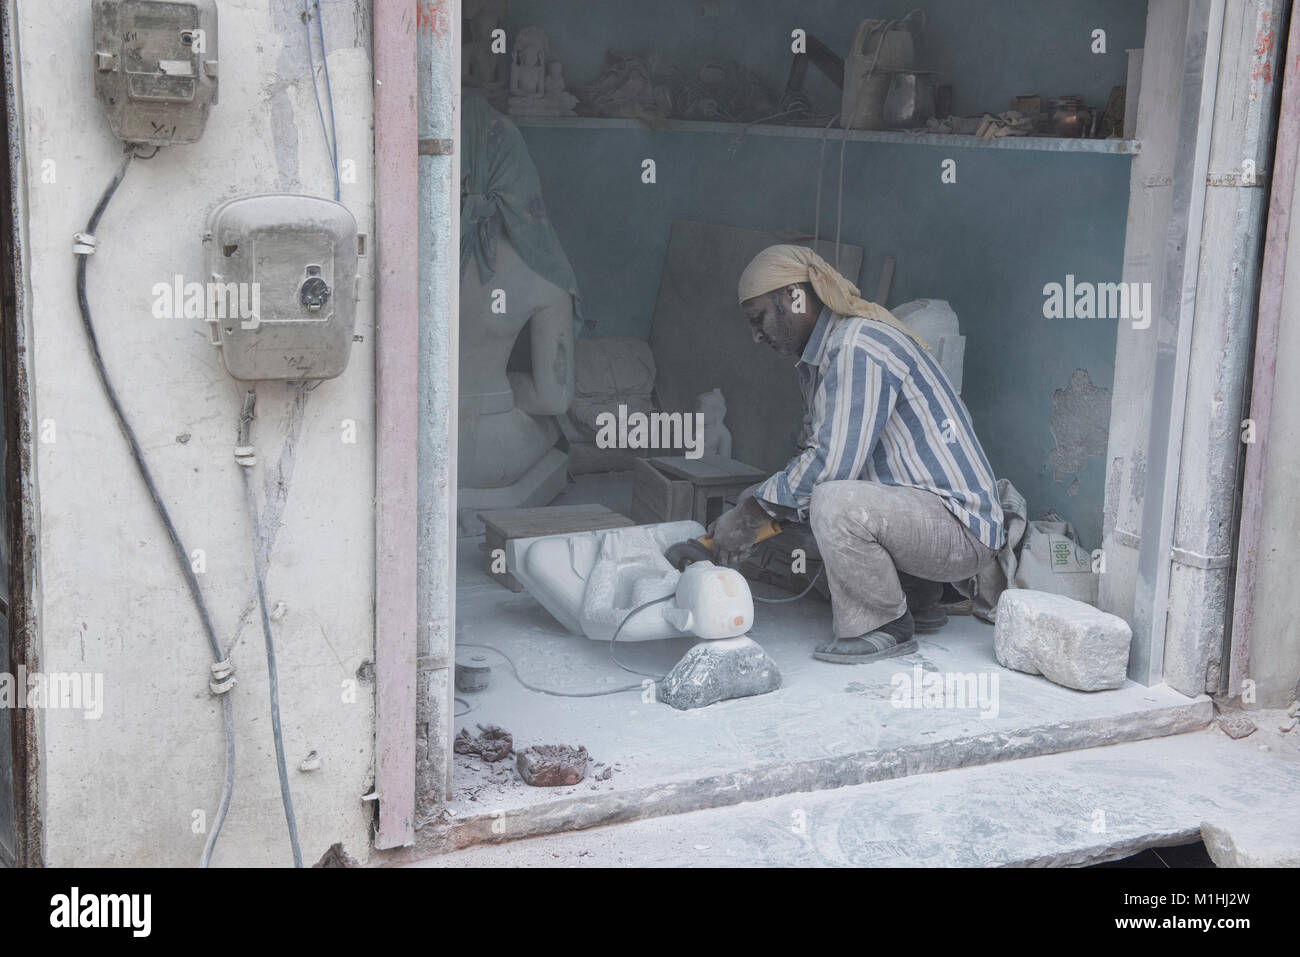 Worker making marble statues, Jaipur, India Stock Photo